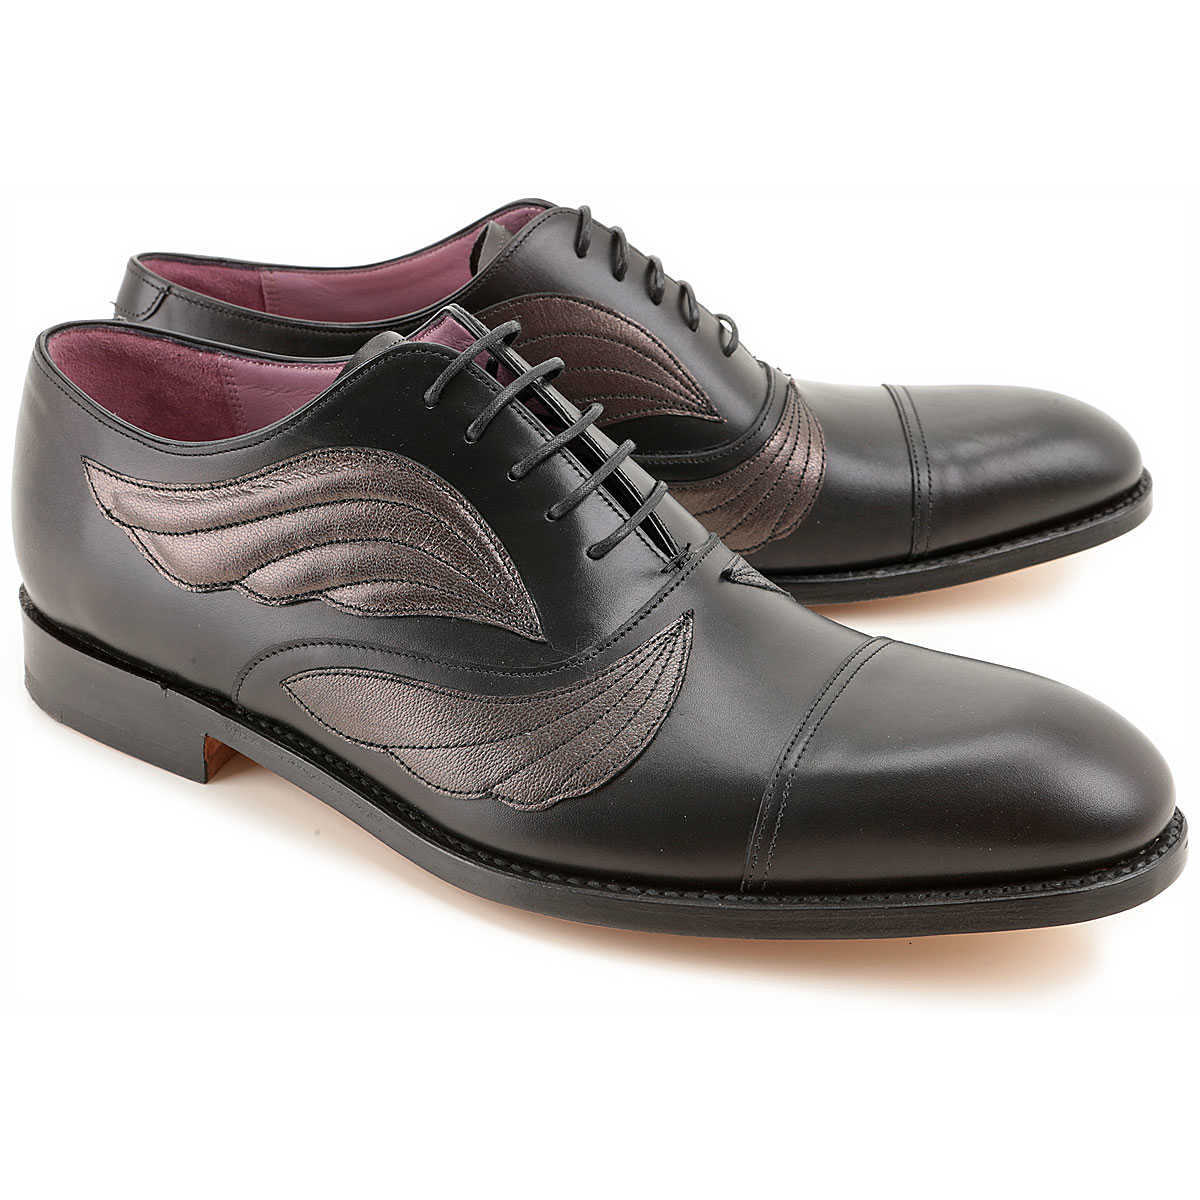 Vivienne Westwood Lace Up Shoes for Men Oxfords Derbies and Brogues On Sale - GOOFASH